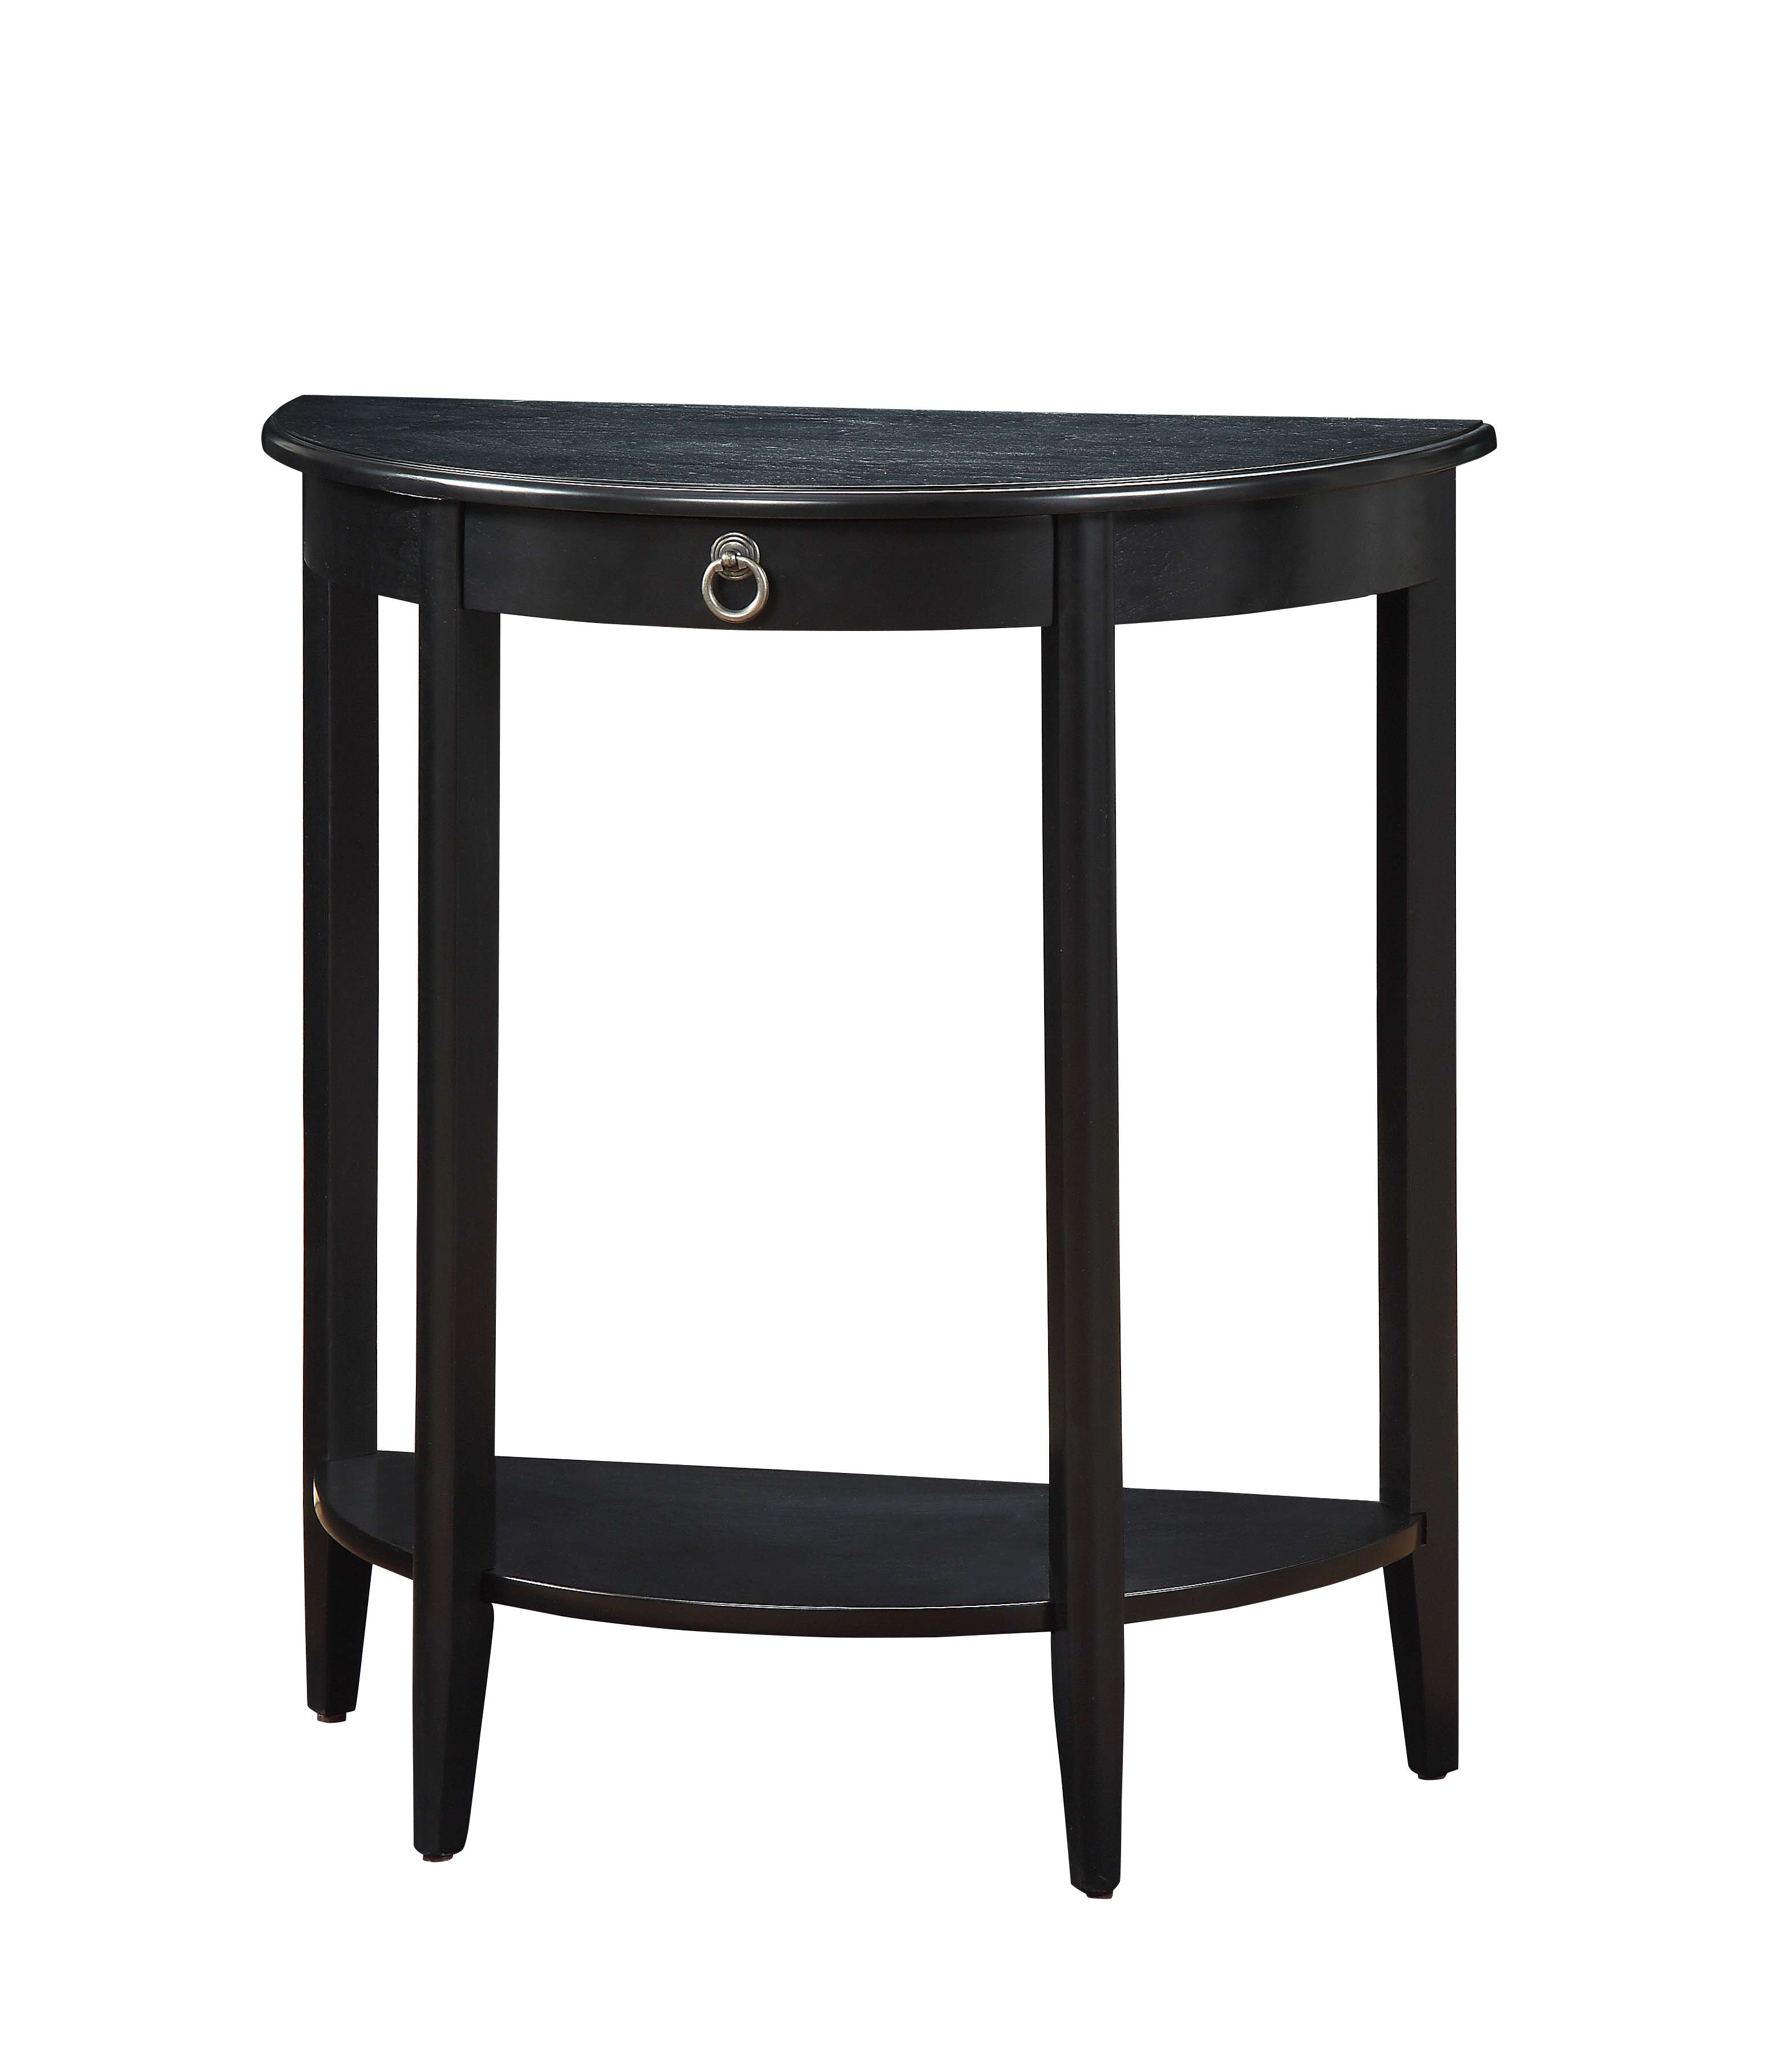 Lovely ACME Elcee Half Moon Console Table In Black With 1 Drawer